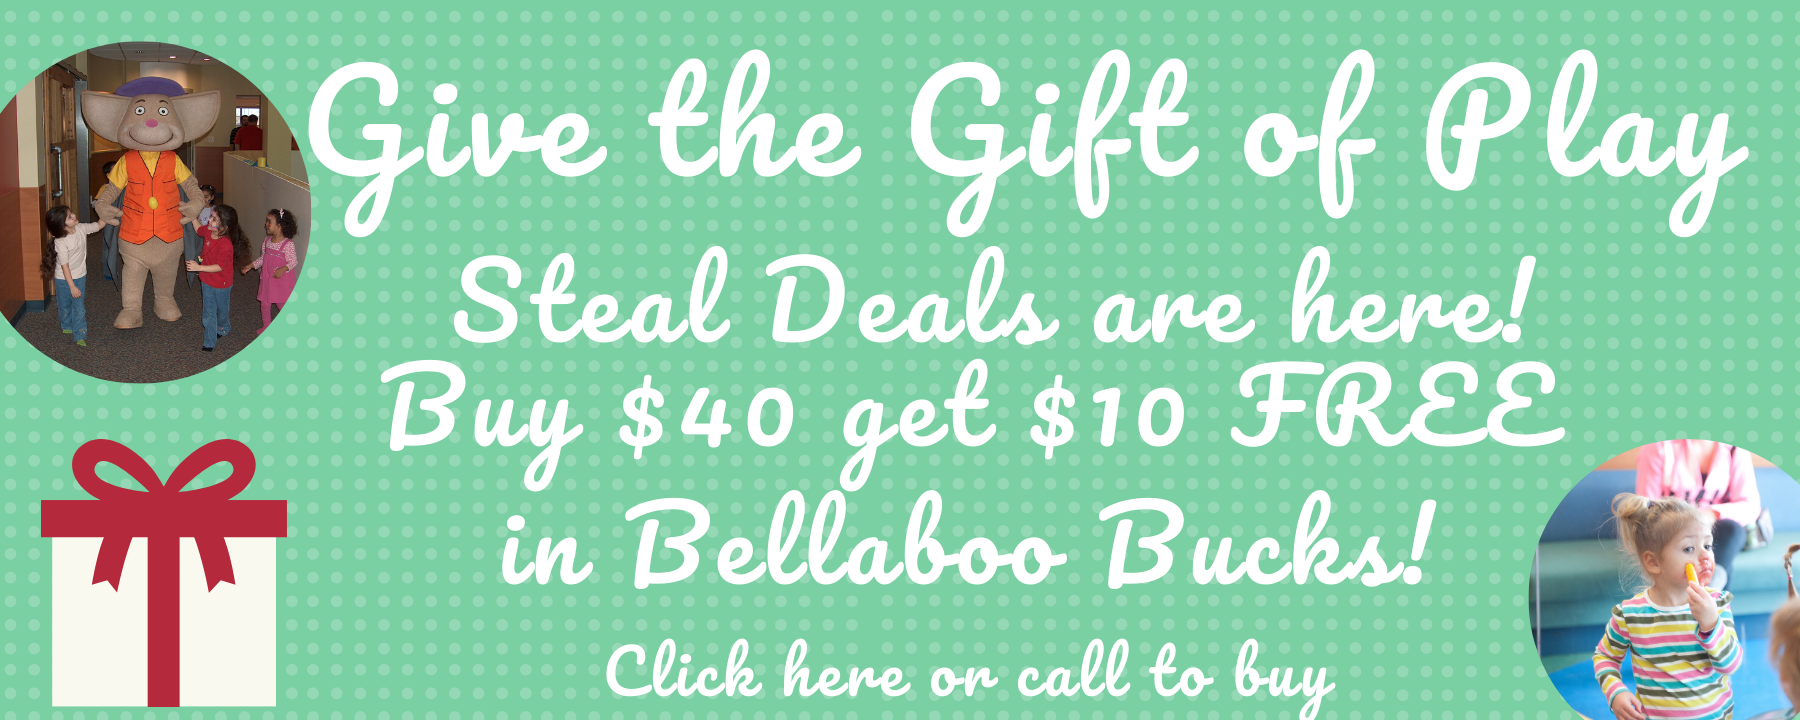 Give the Gift of Play! Bellaboo Bucks Deal